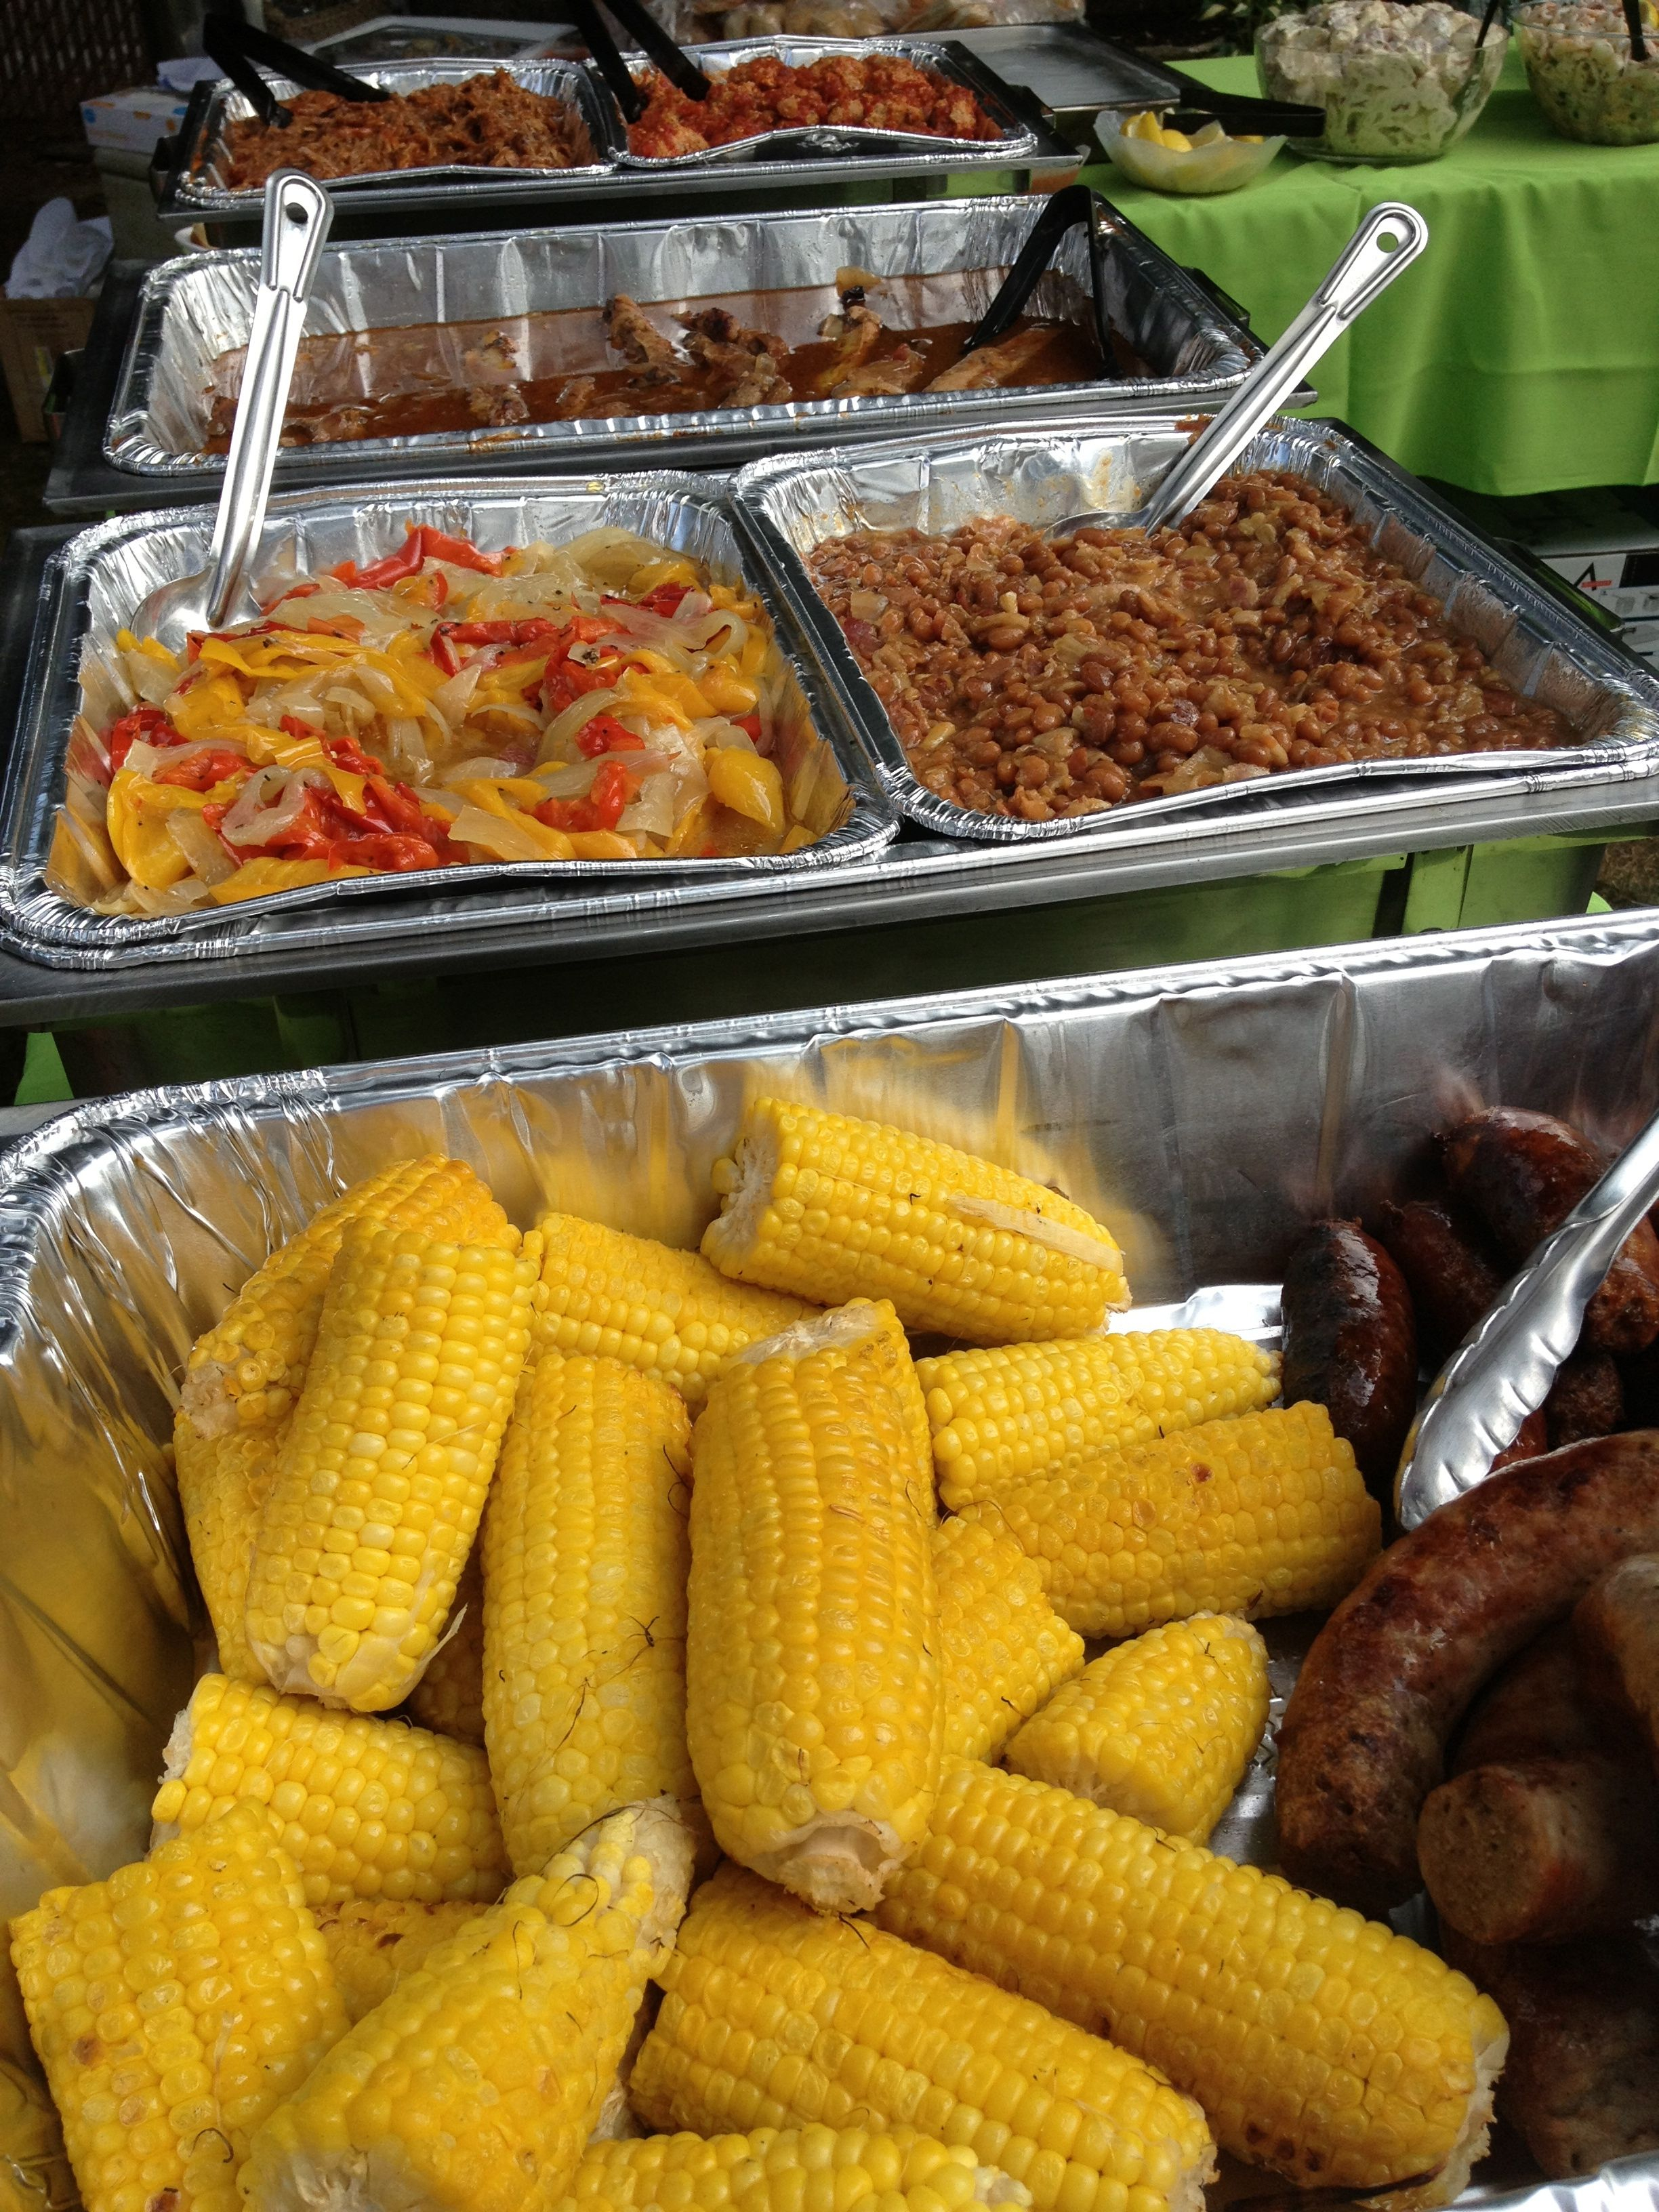 Backyard Bbq Catering Items Backyard Party Decorations Birthday with regard to 15 Genius Ideas How to Make Backyard Barbecue Party Ideas